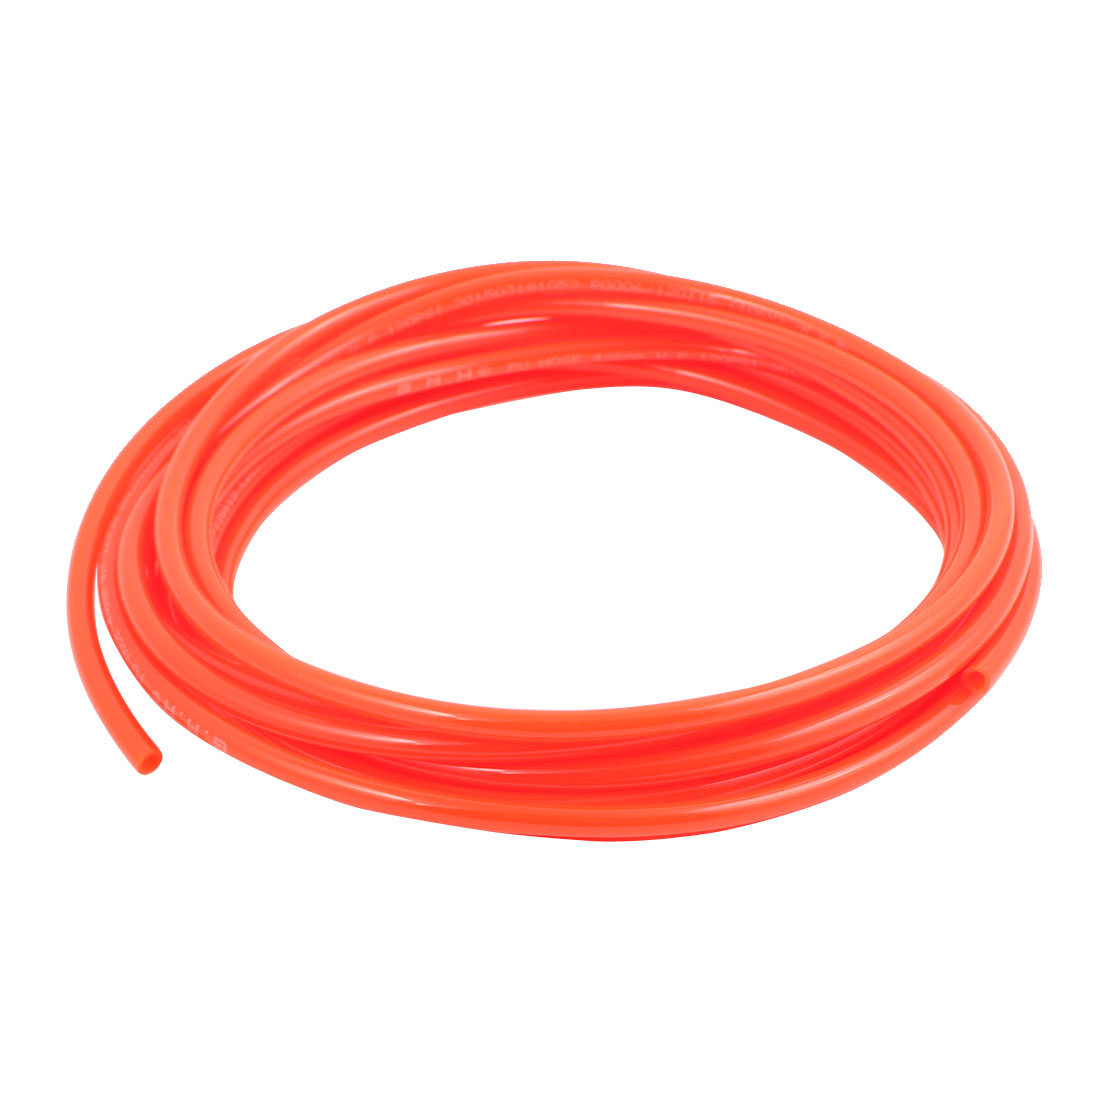 4mm x 6mm Pneumatic Air Compressor Tubing PU Hose Tube Pipe 6 meter Orange